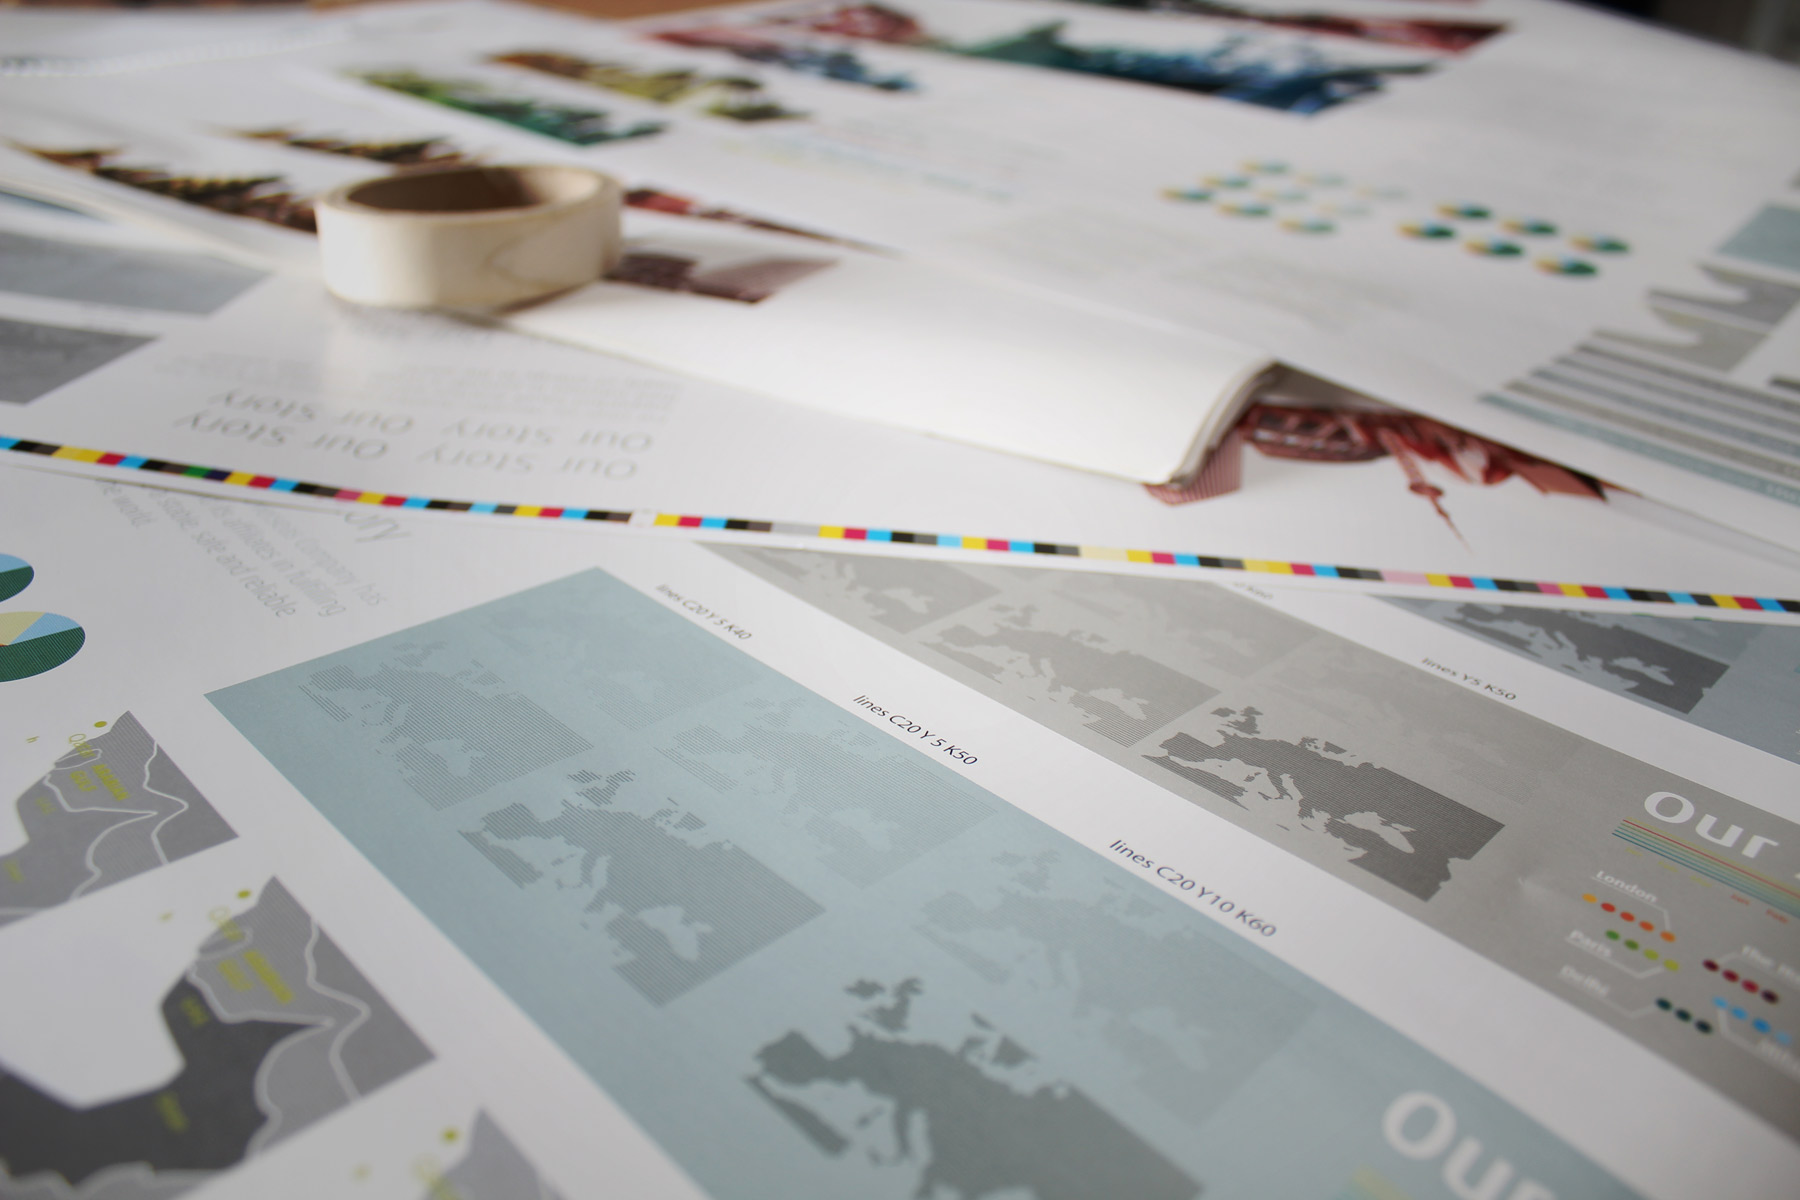 All content for the brochure was carefully wet proofed - A process whereby all print colours can be measured as if coming straight off the press - By using a proofing press.